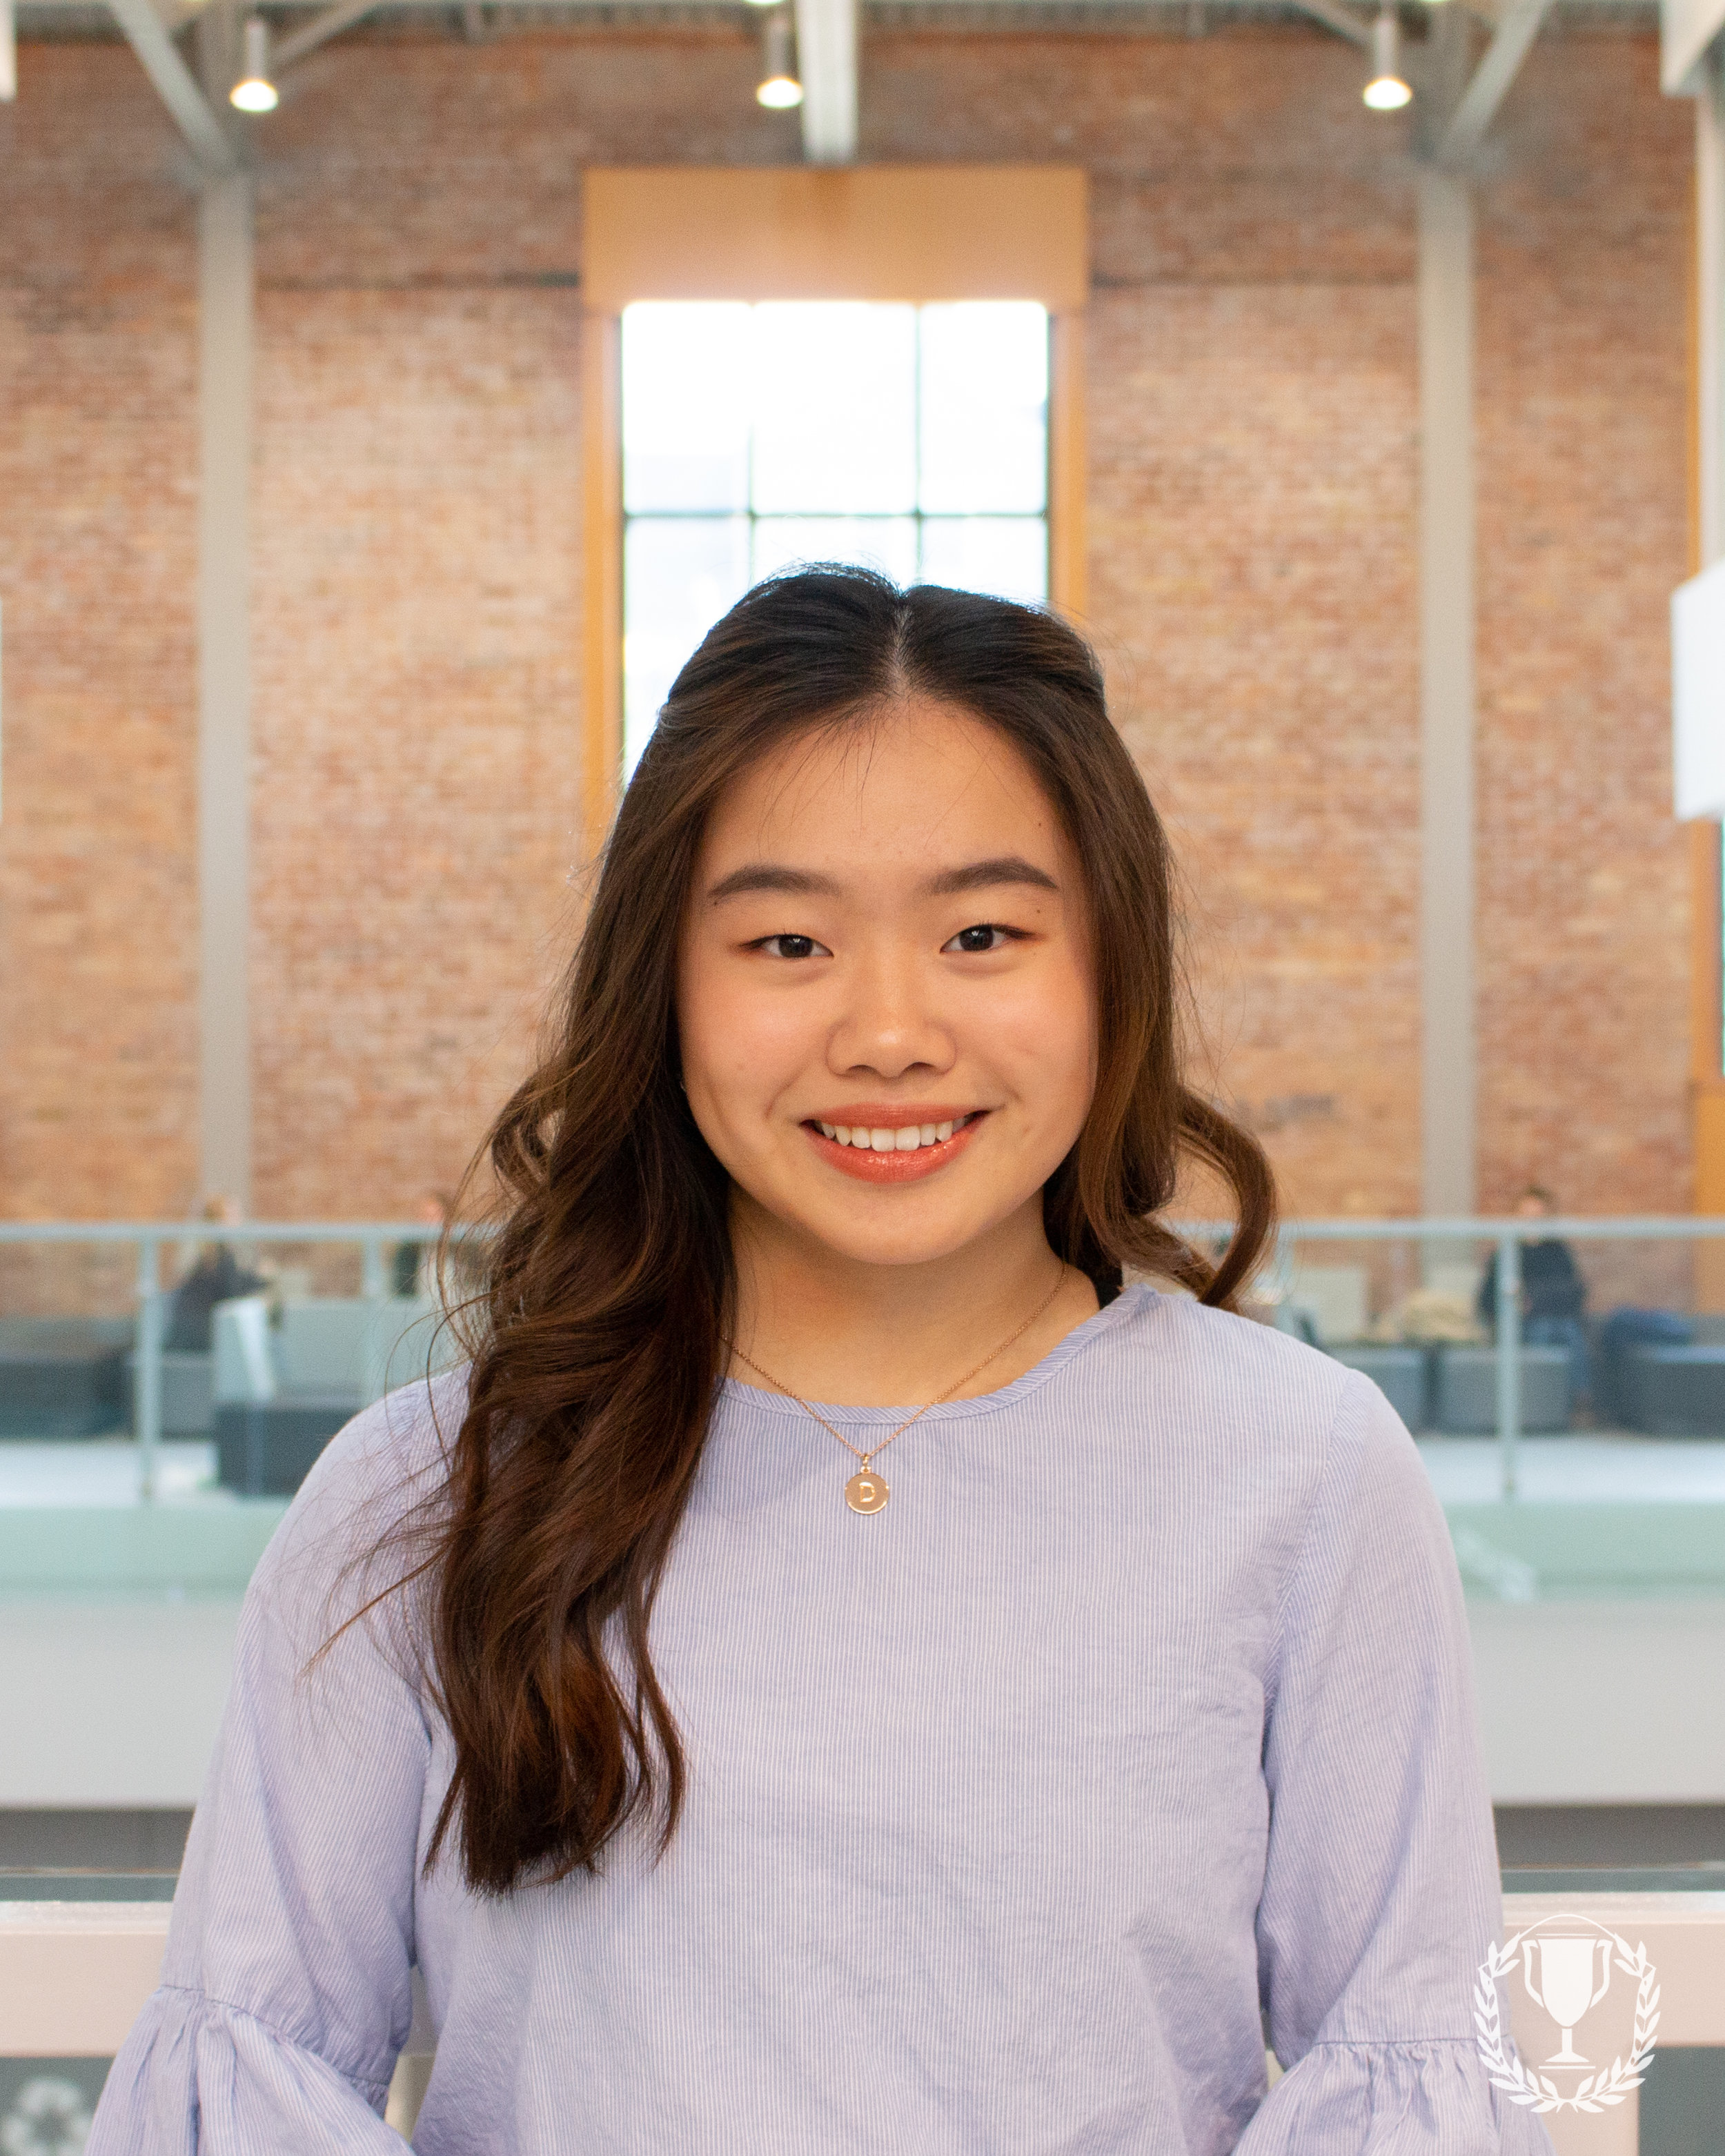 Doris Zhuo - Special Events Coordinator   This year will be I.C.B.C.'s 42nd year in running and continuing its legacy as Canada's oldest case competition! Doris is so excited to share this amazing experience with judges, alumni, and competitors from around the world. She looks forward to putting together another successful year as she will be organizing all the banquets, socials, and networking events with her partner in crime, Bosco! The strong passion and dedication the executive team has contributed thus far, she cannot wait to see how I.C.B.C. 2020 will unfold!